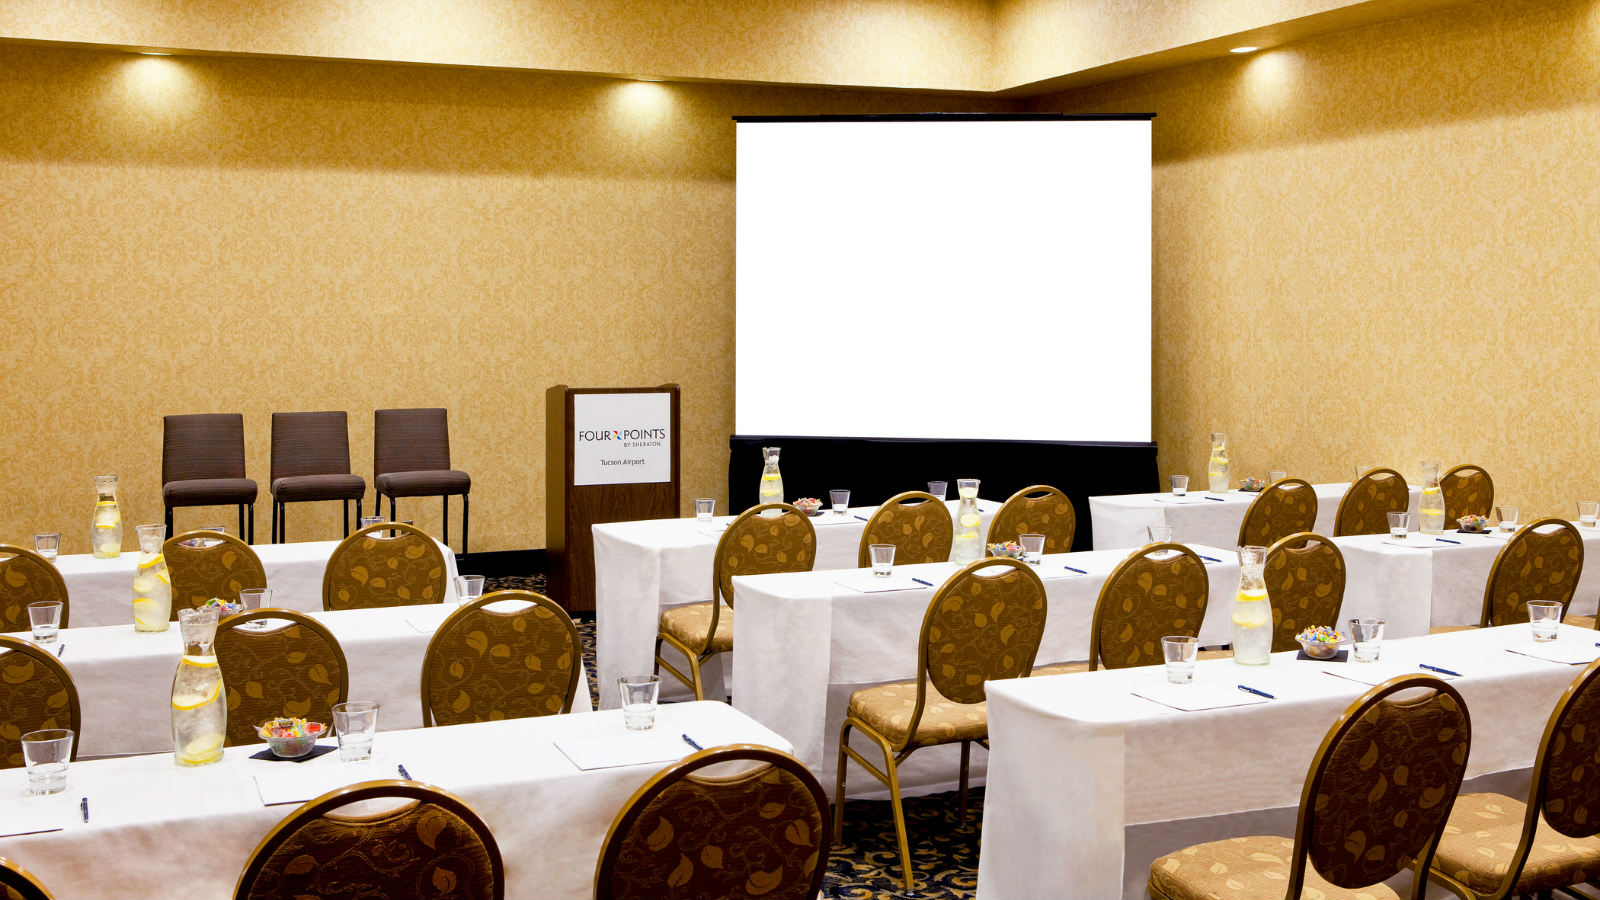 Event Venues Tucson - Meeting Room